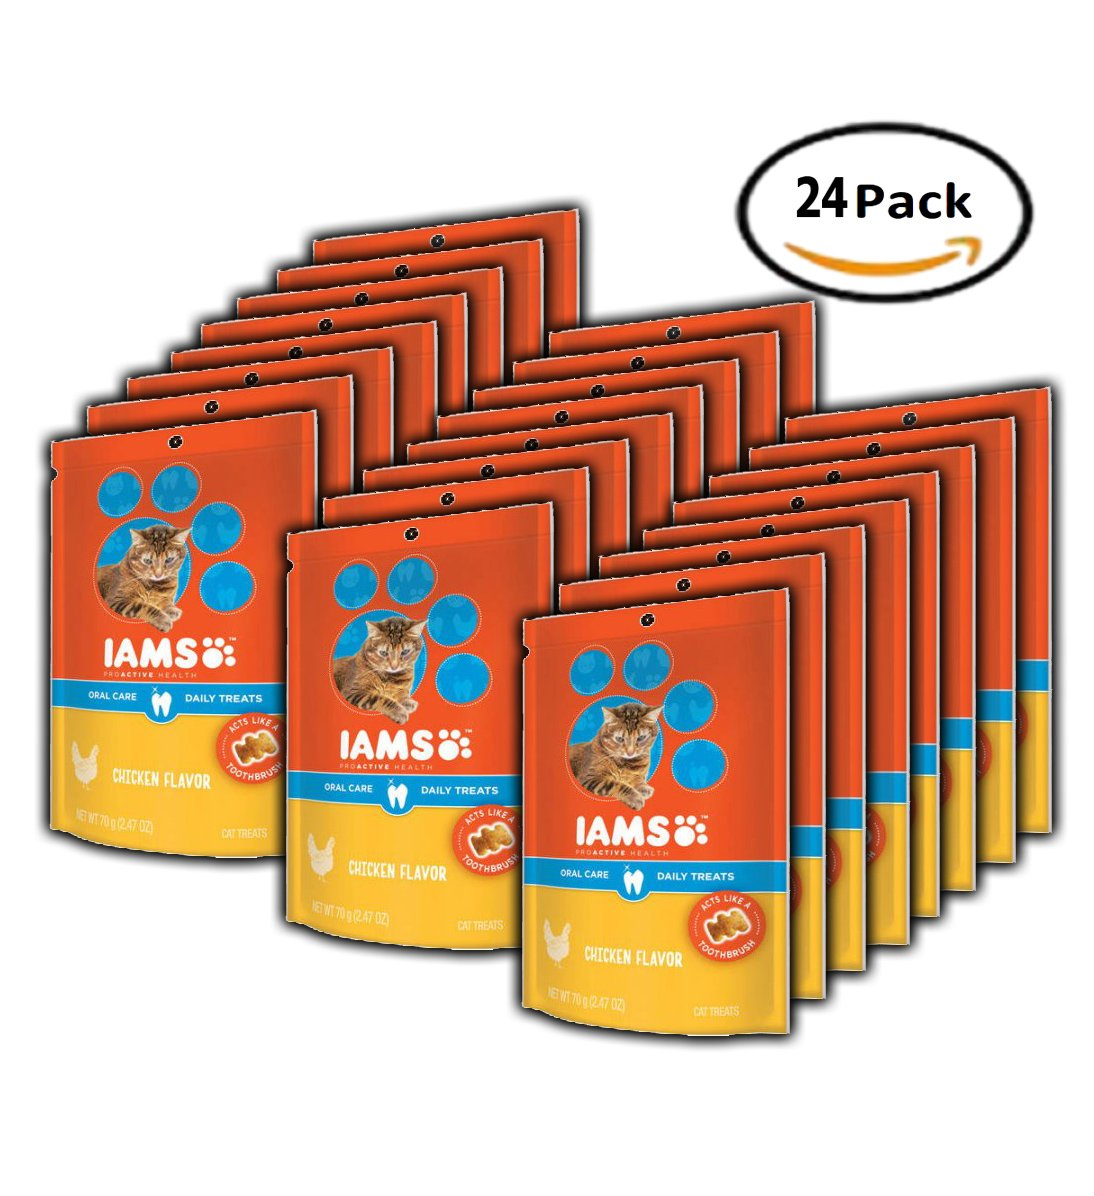 PACK OF 24 - IAMS PROACTIVE HEALTH Oral Care Daily Treats for Cats Chicken Flavor 2.47 Ounces